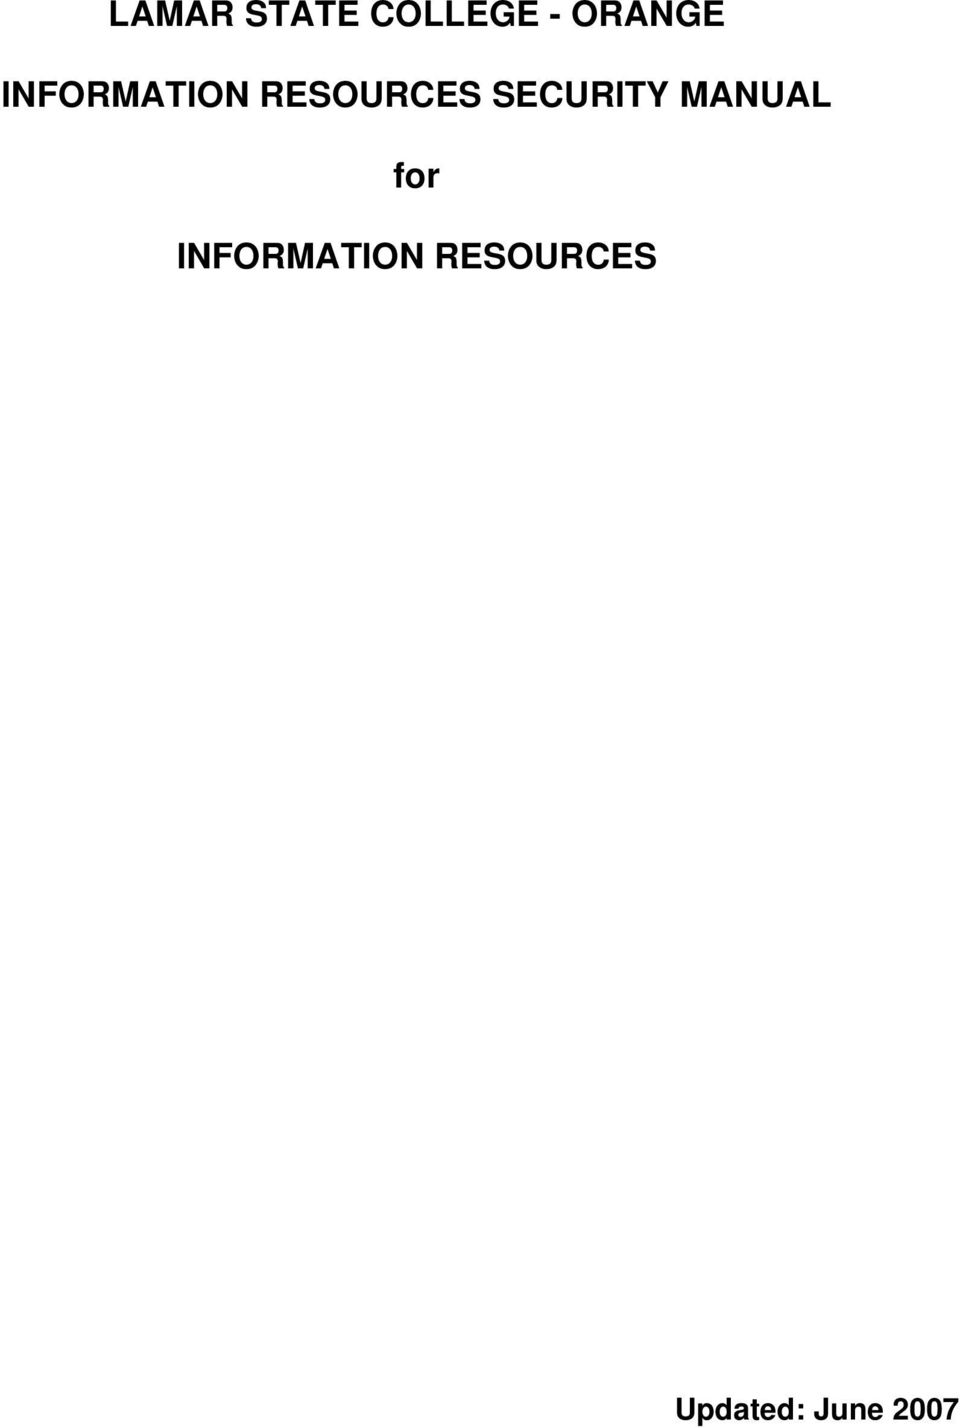 RESOURCES SECURITY MANUAL